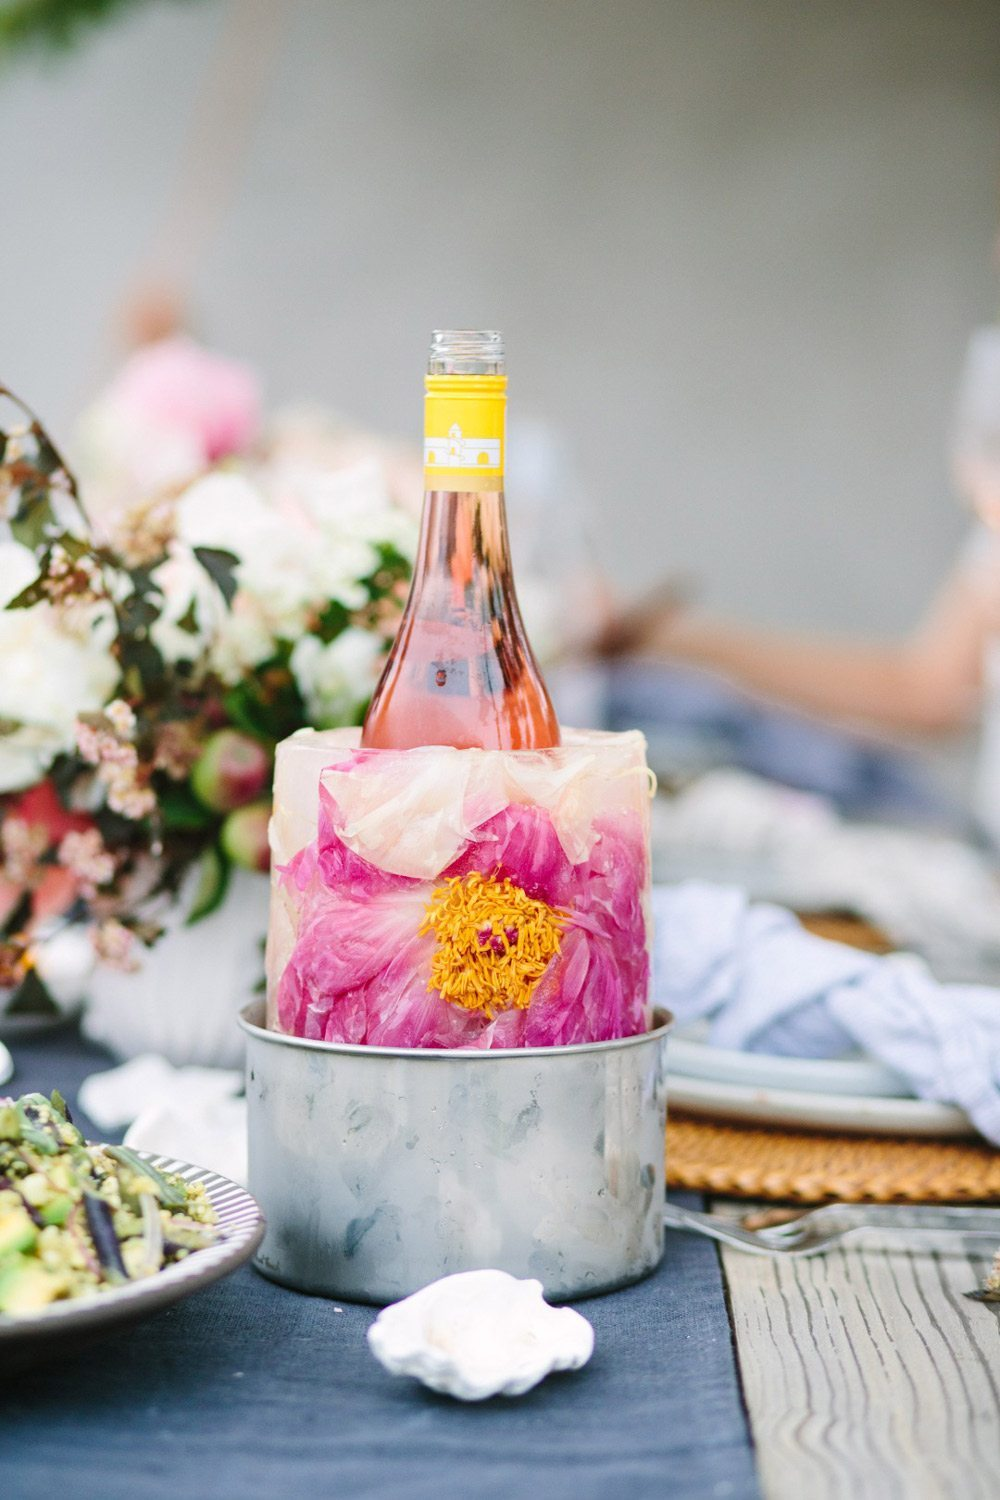 10 Unexpectedly Refreshing Ways To Dress Up Your Ice Cubes For Summer The Sweetest Occasion